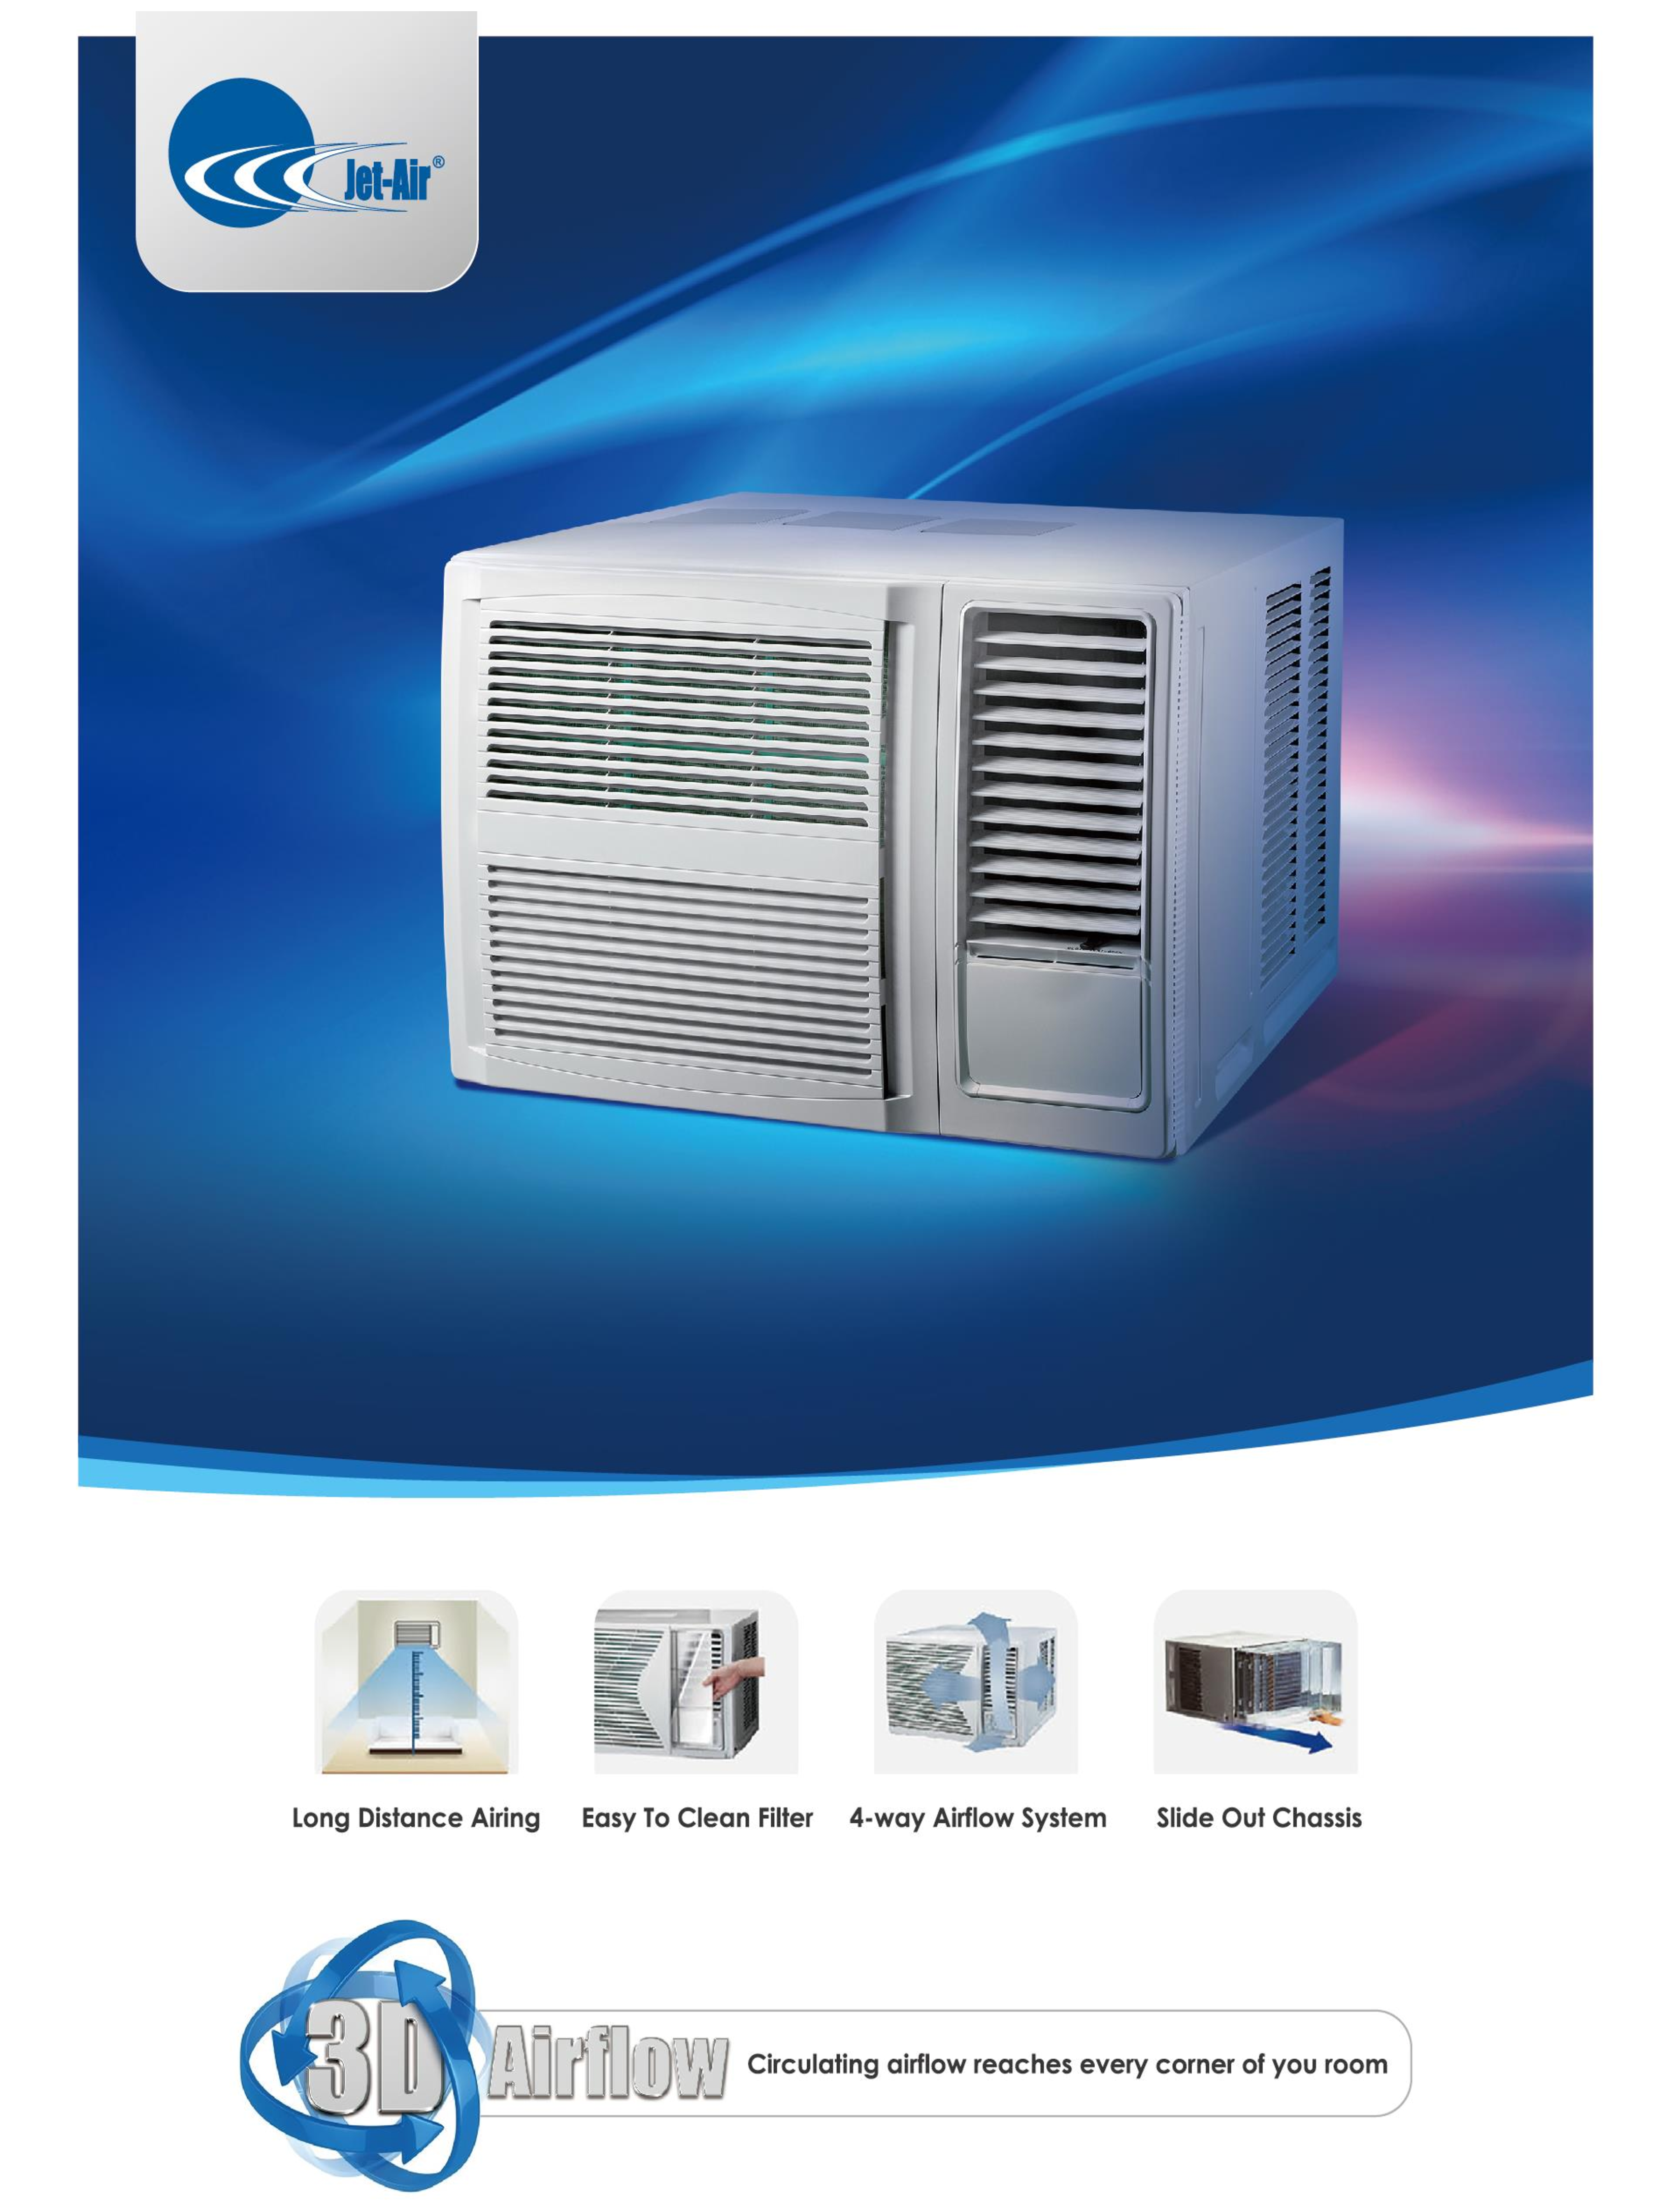 Jet Air Air Conditioners Cool Solutions